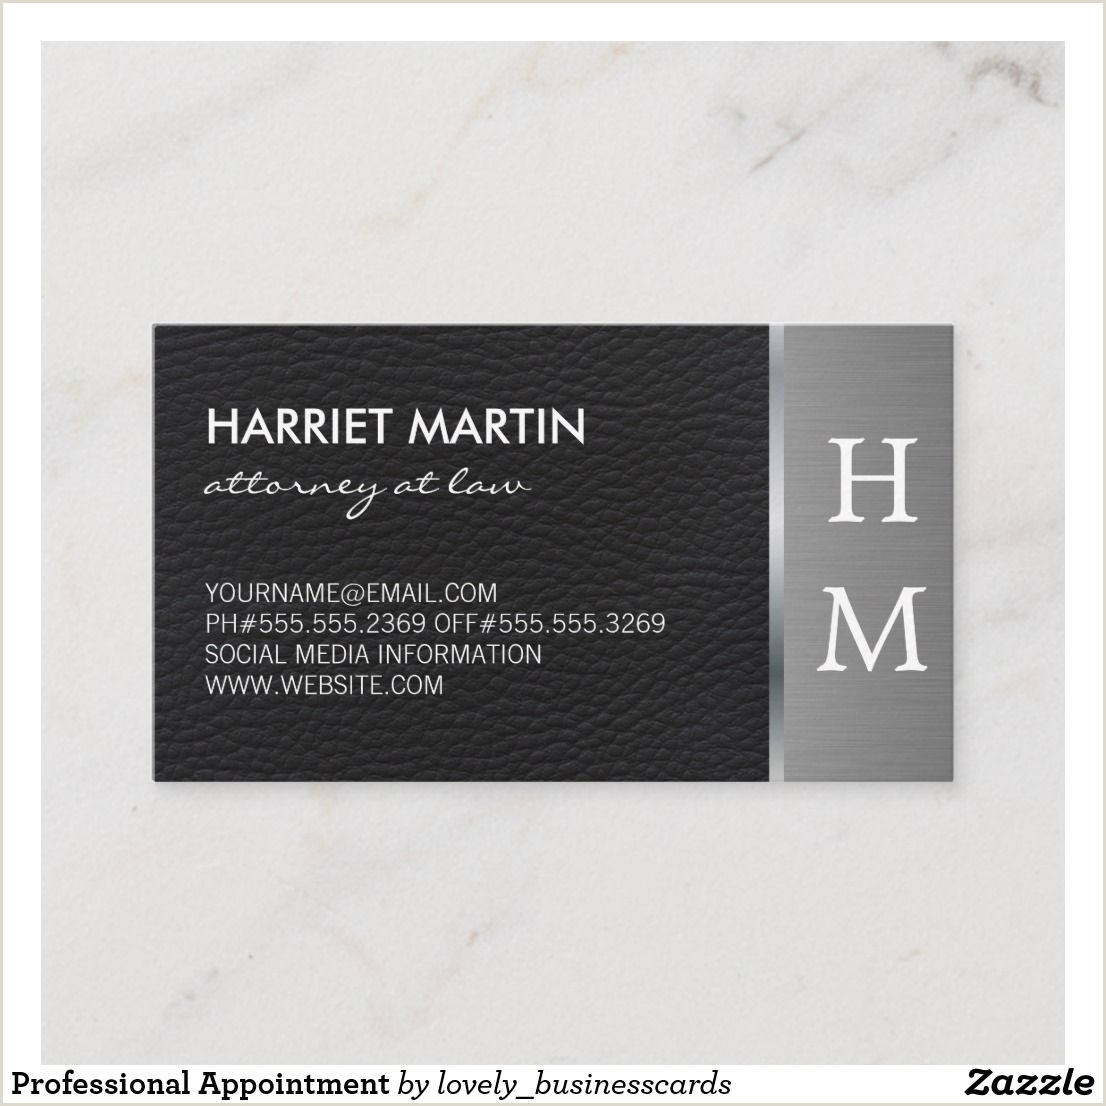 Where Do I Find Social Media Images For Business Cards Professional Appointment Zazzle